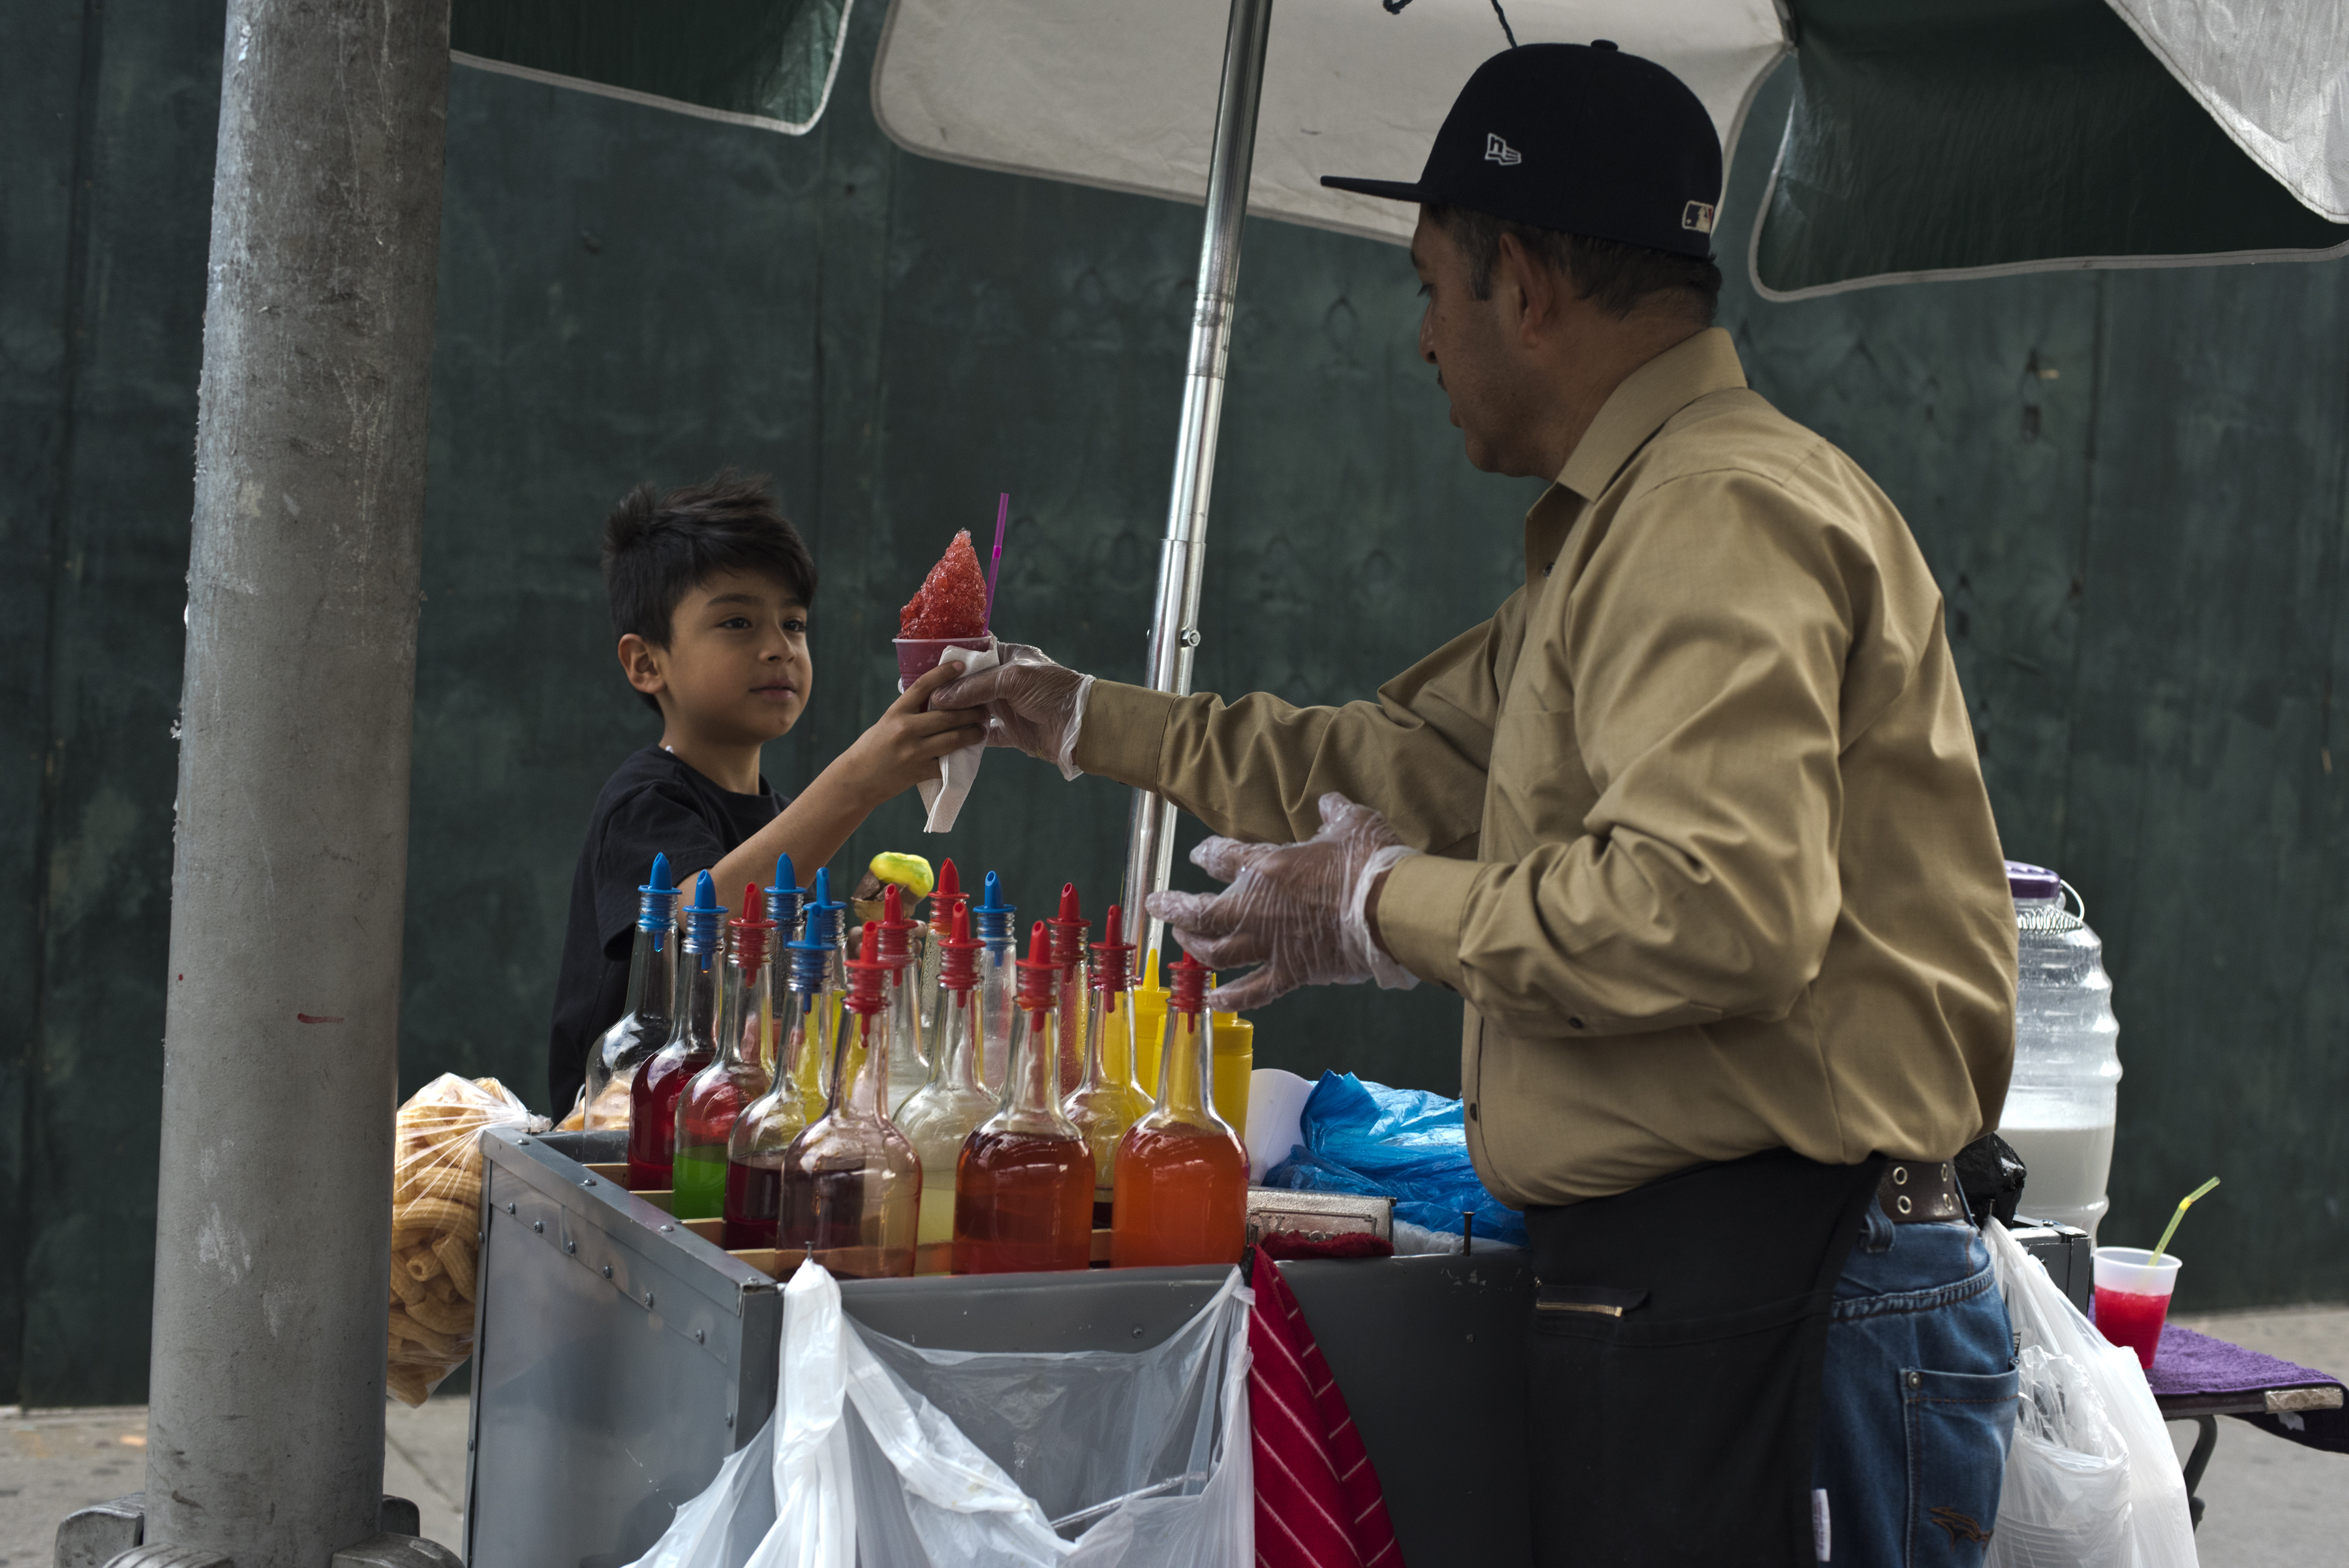 Juan serves a young customer in Corona, Queens.